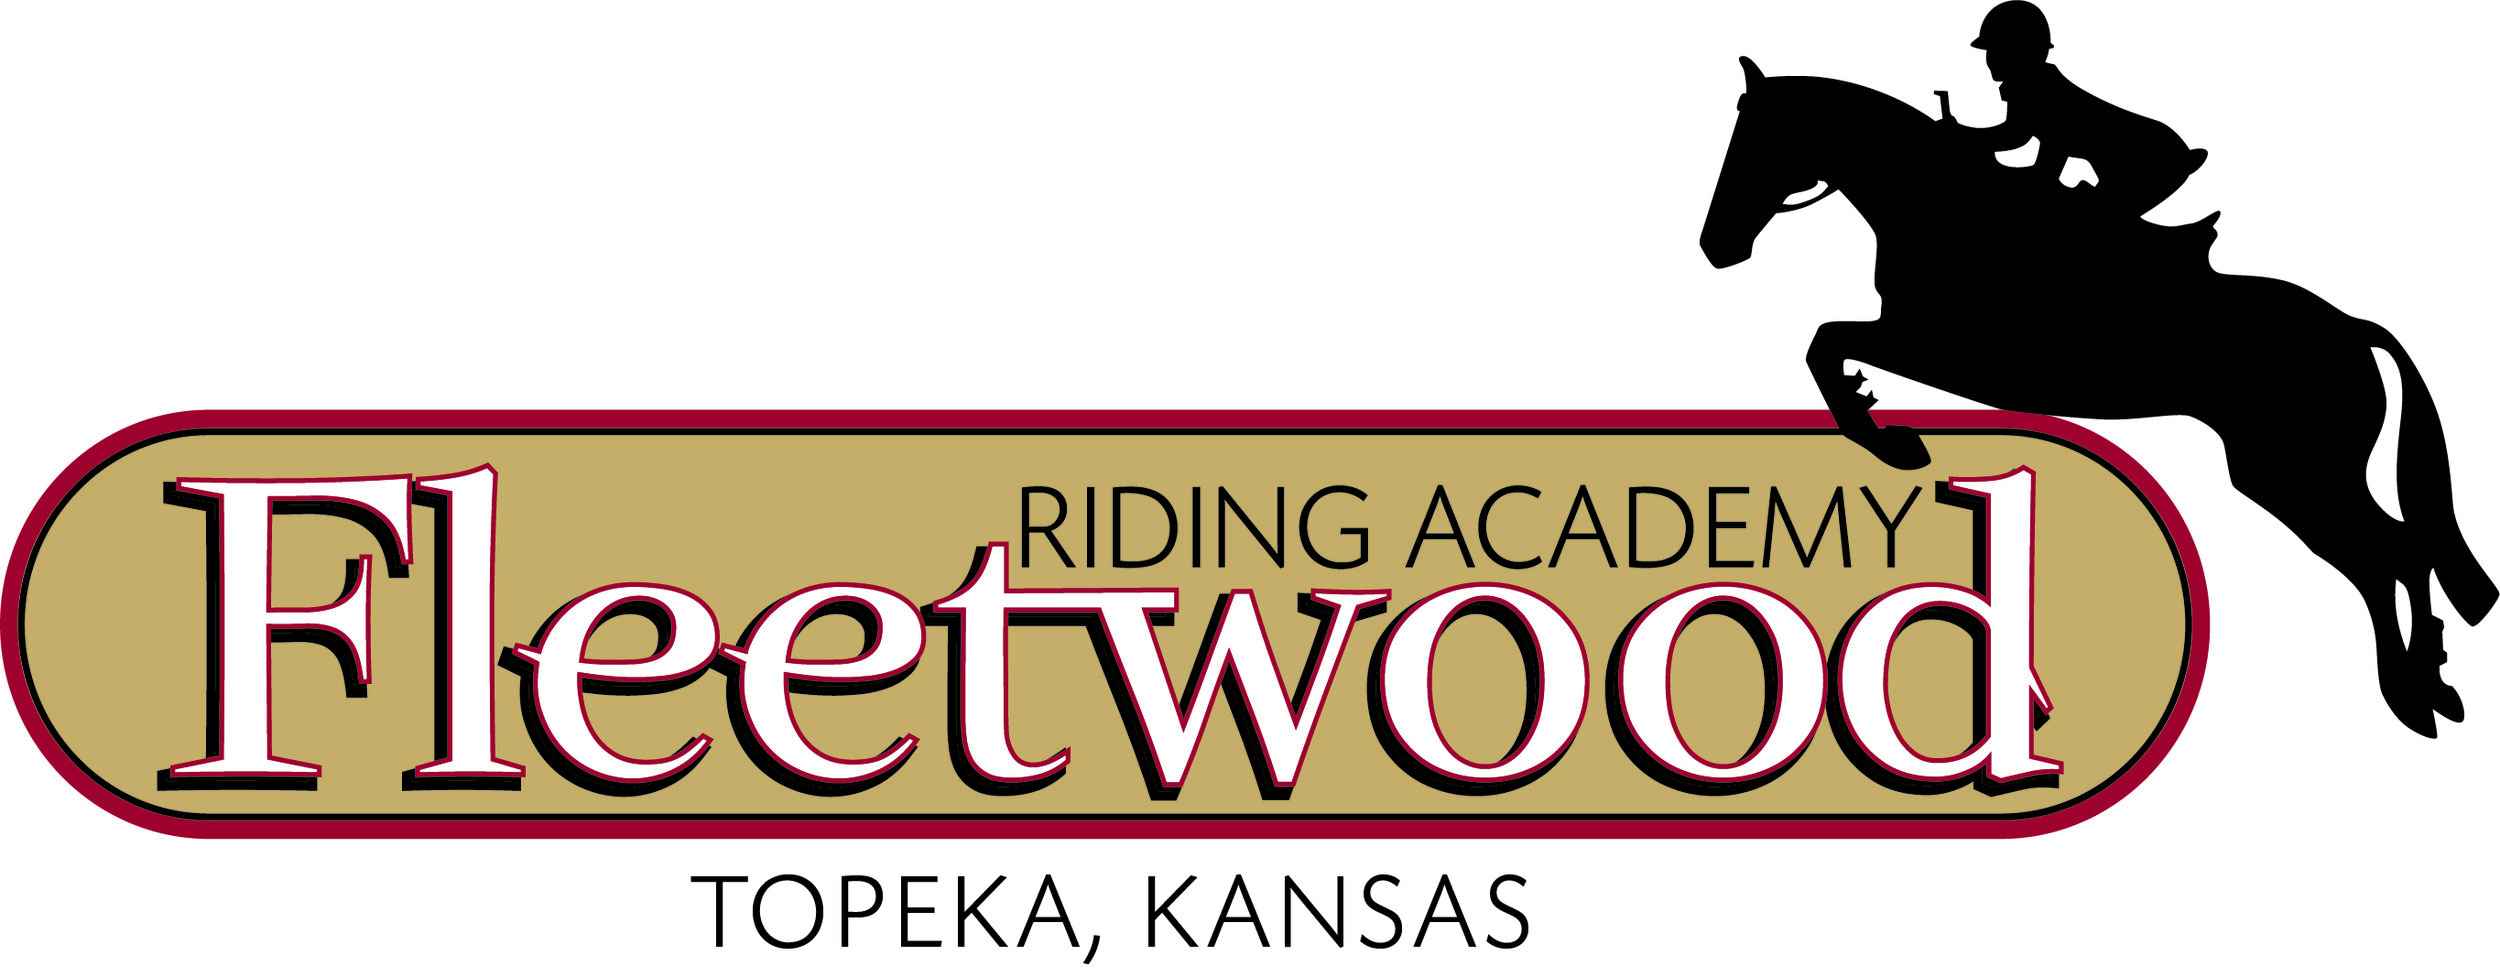 Fleetwood Riding Academy - Silver Sponsor